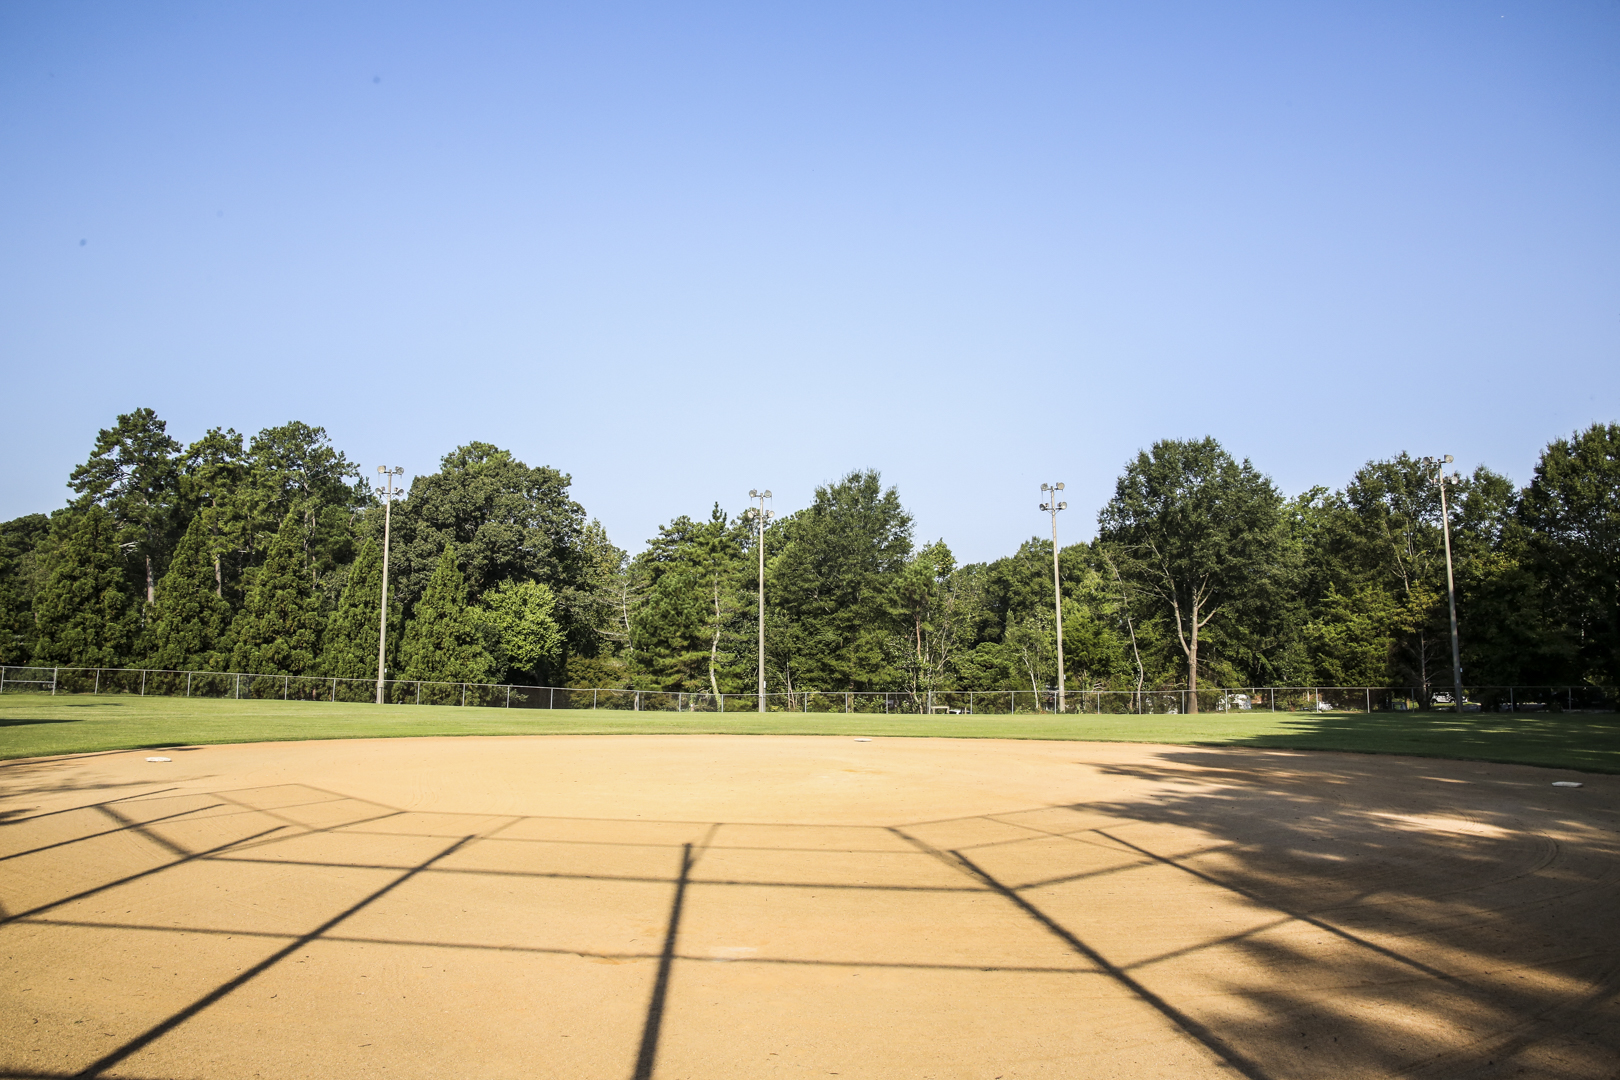 A second open field used for softball